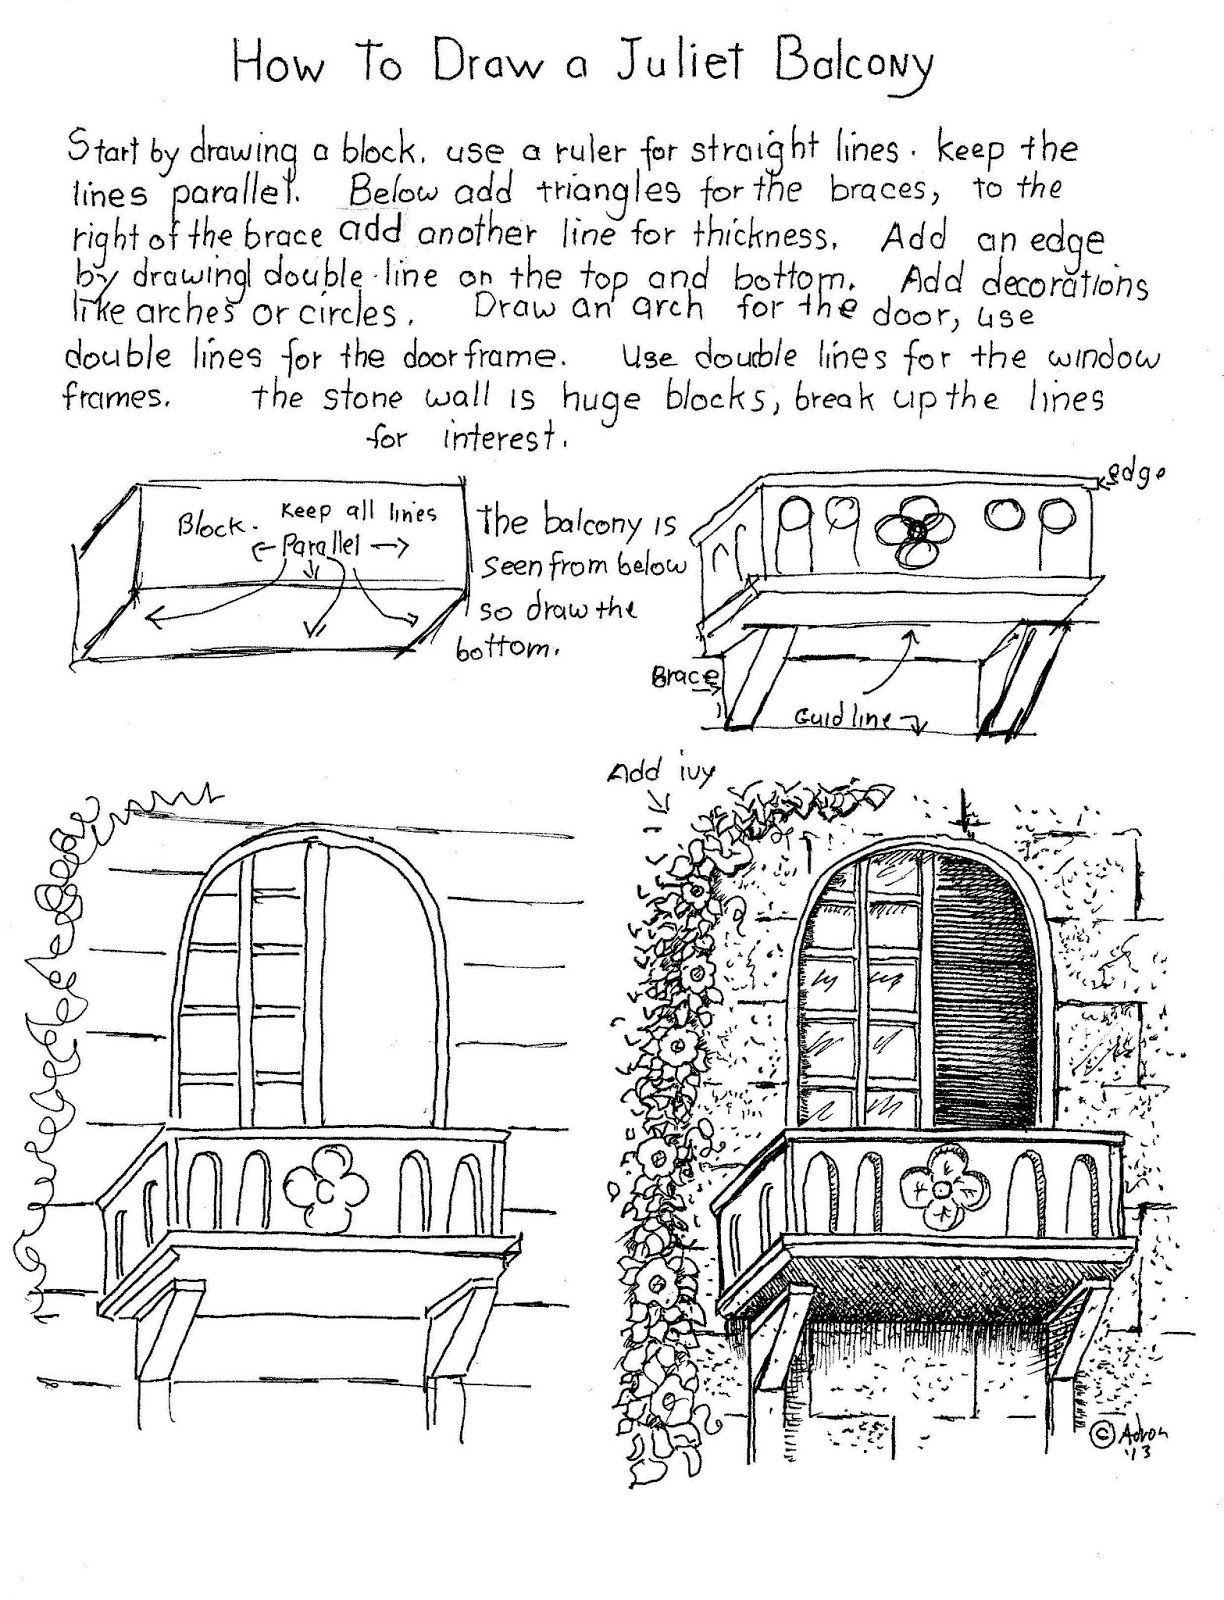 How To Draw A Balcony Worksheet